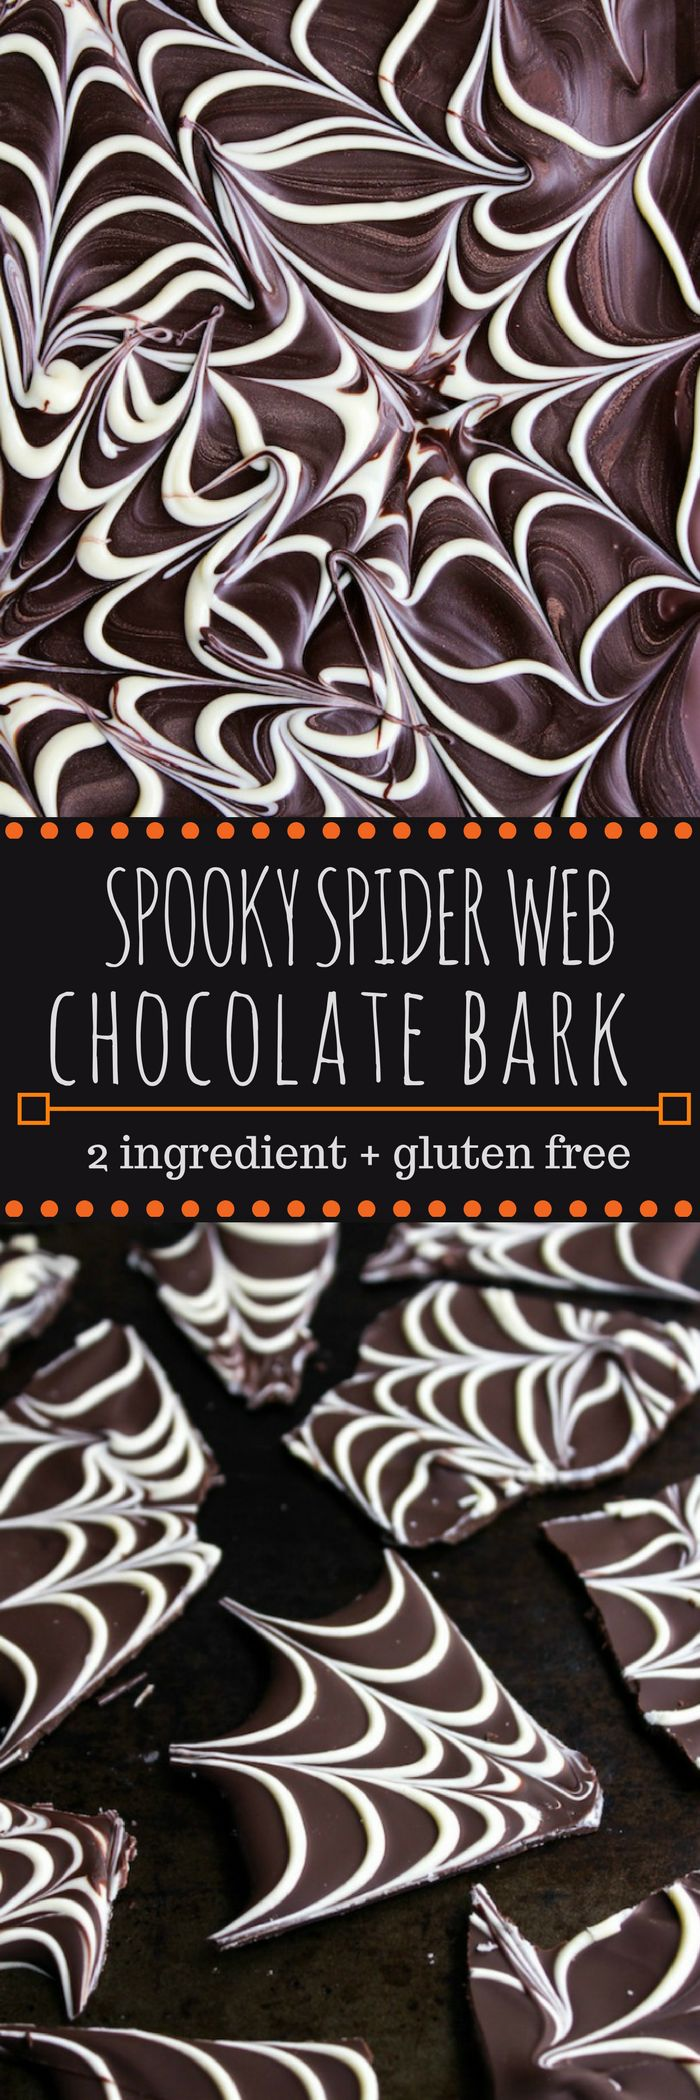 Two-ingredient spider web chocolate bark - a fast an easy Halloween treat! A dark chocolate base topped with white chocolate spider web decorations